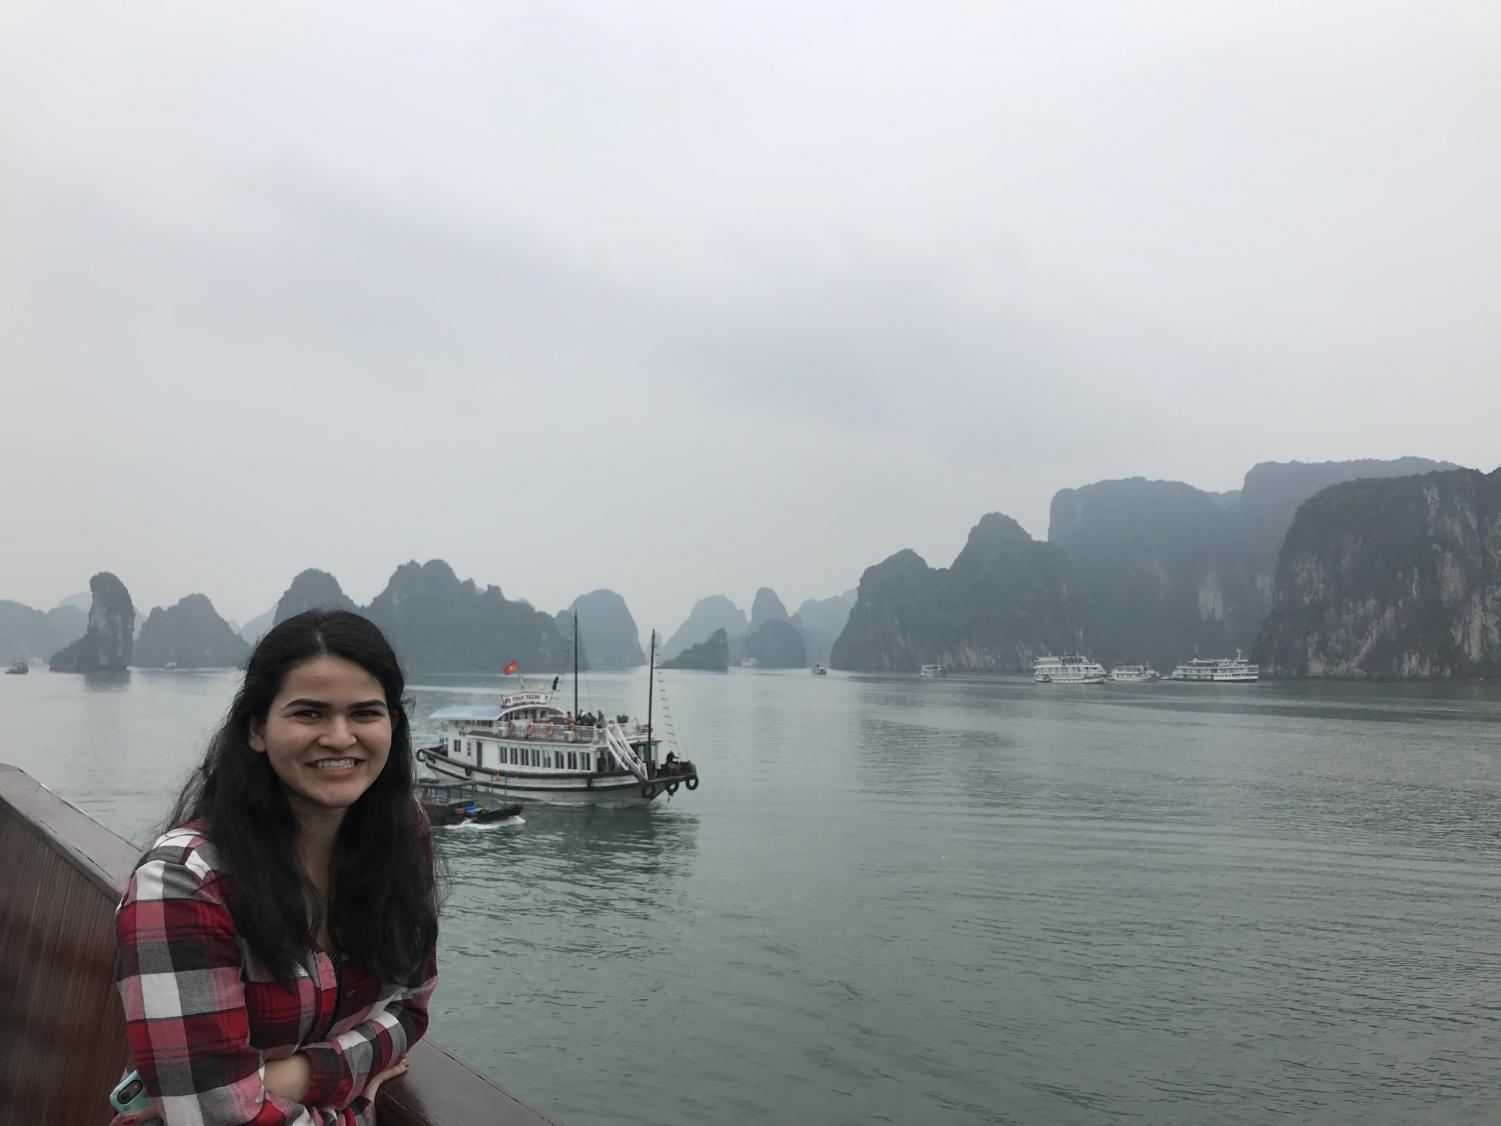 Sarina Upadhye, junior, traveled to Vietnam over winer break and posted this picture on her Instagram.